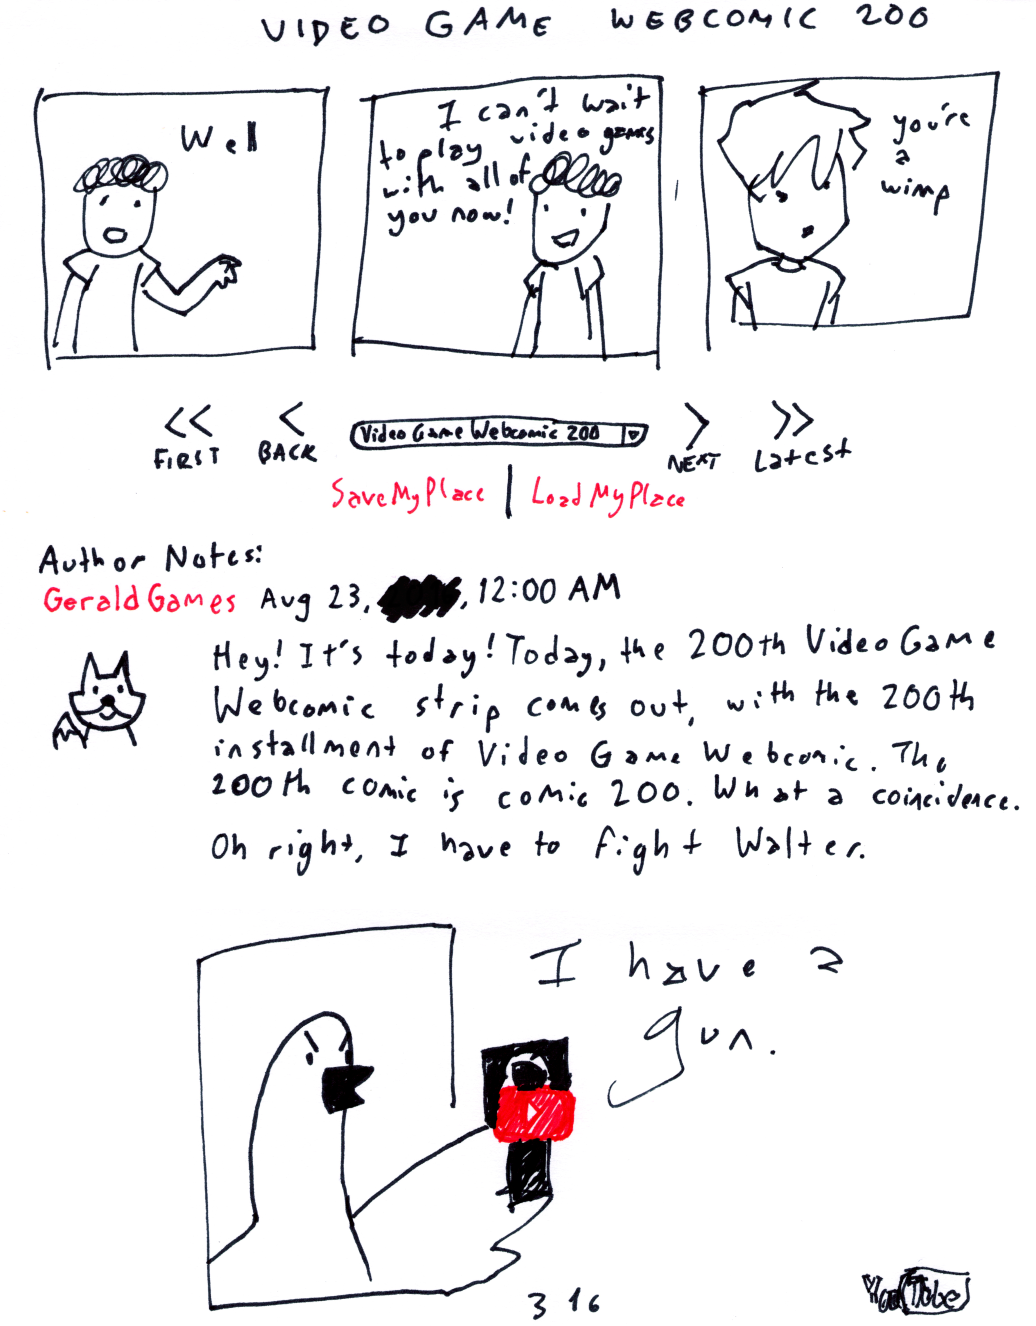 Video Game Webcomic 200